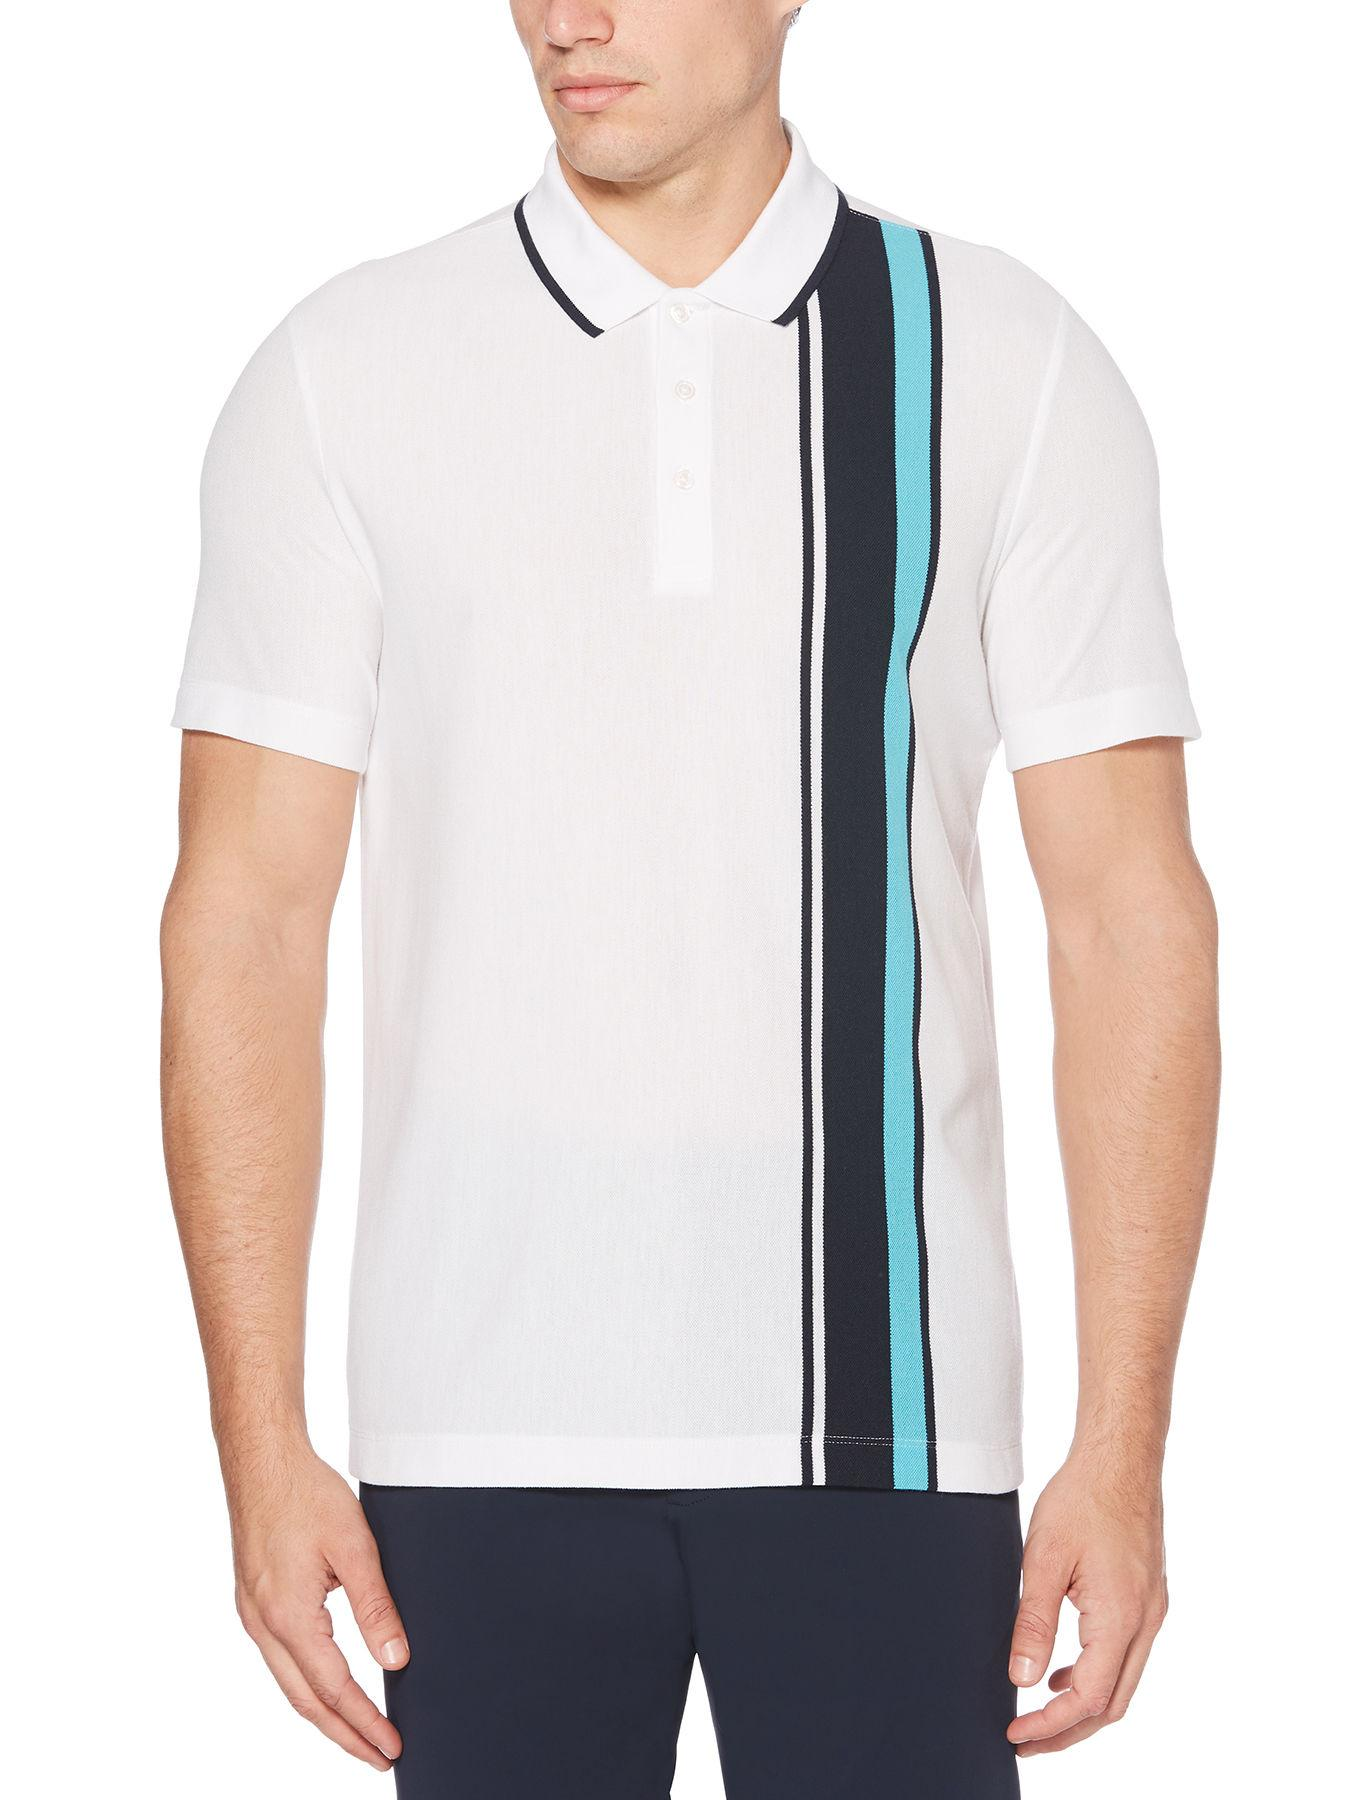 723dfea2be Lyst - Perry Ellis Pique Stripe Polo Shirt in White for Men